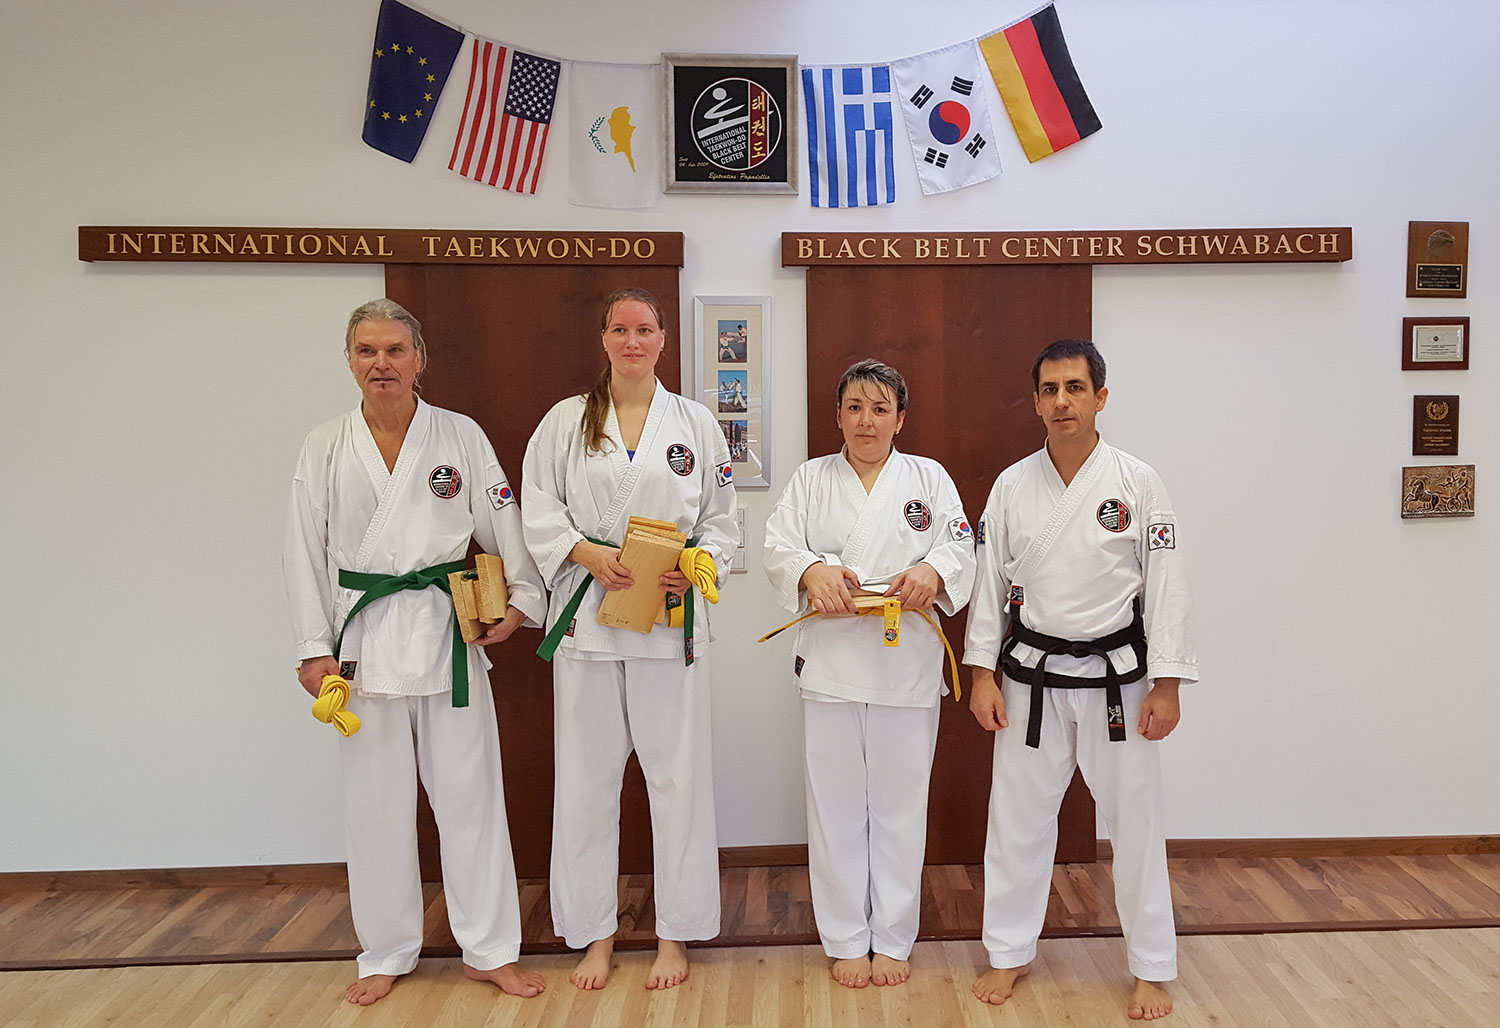 TaekwonDo-Prüfungen im International Taekwon-Do Black Belt Center Schwabach am 19.11.2016